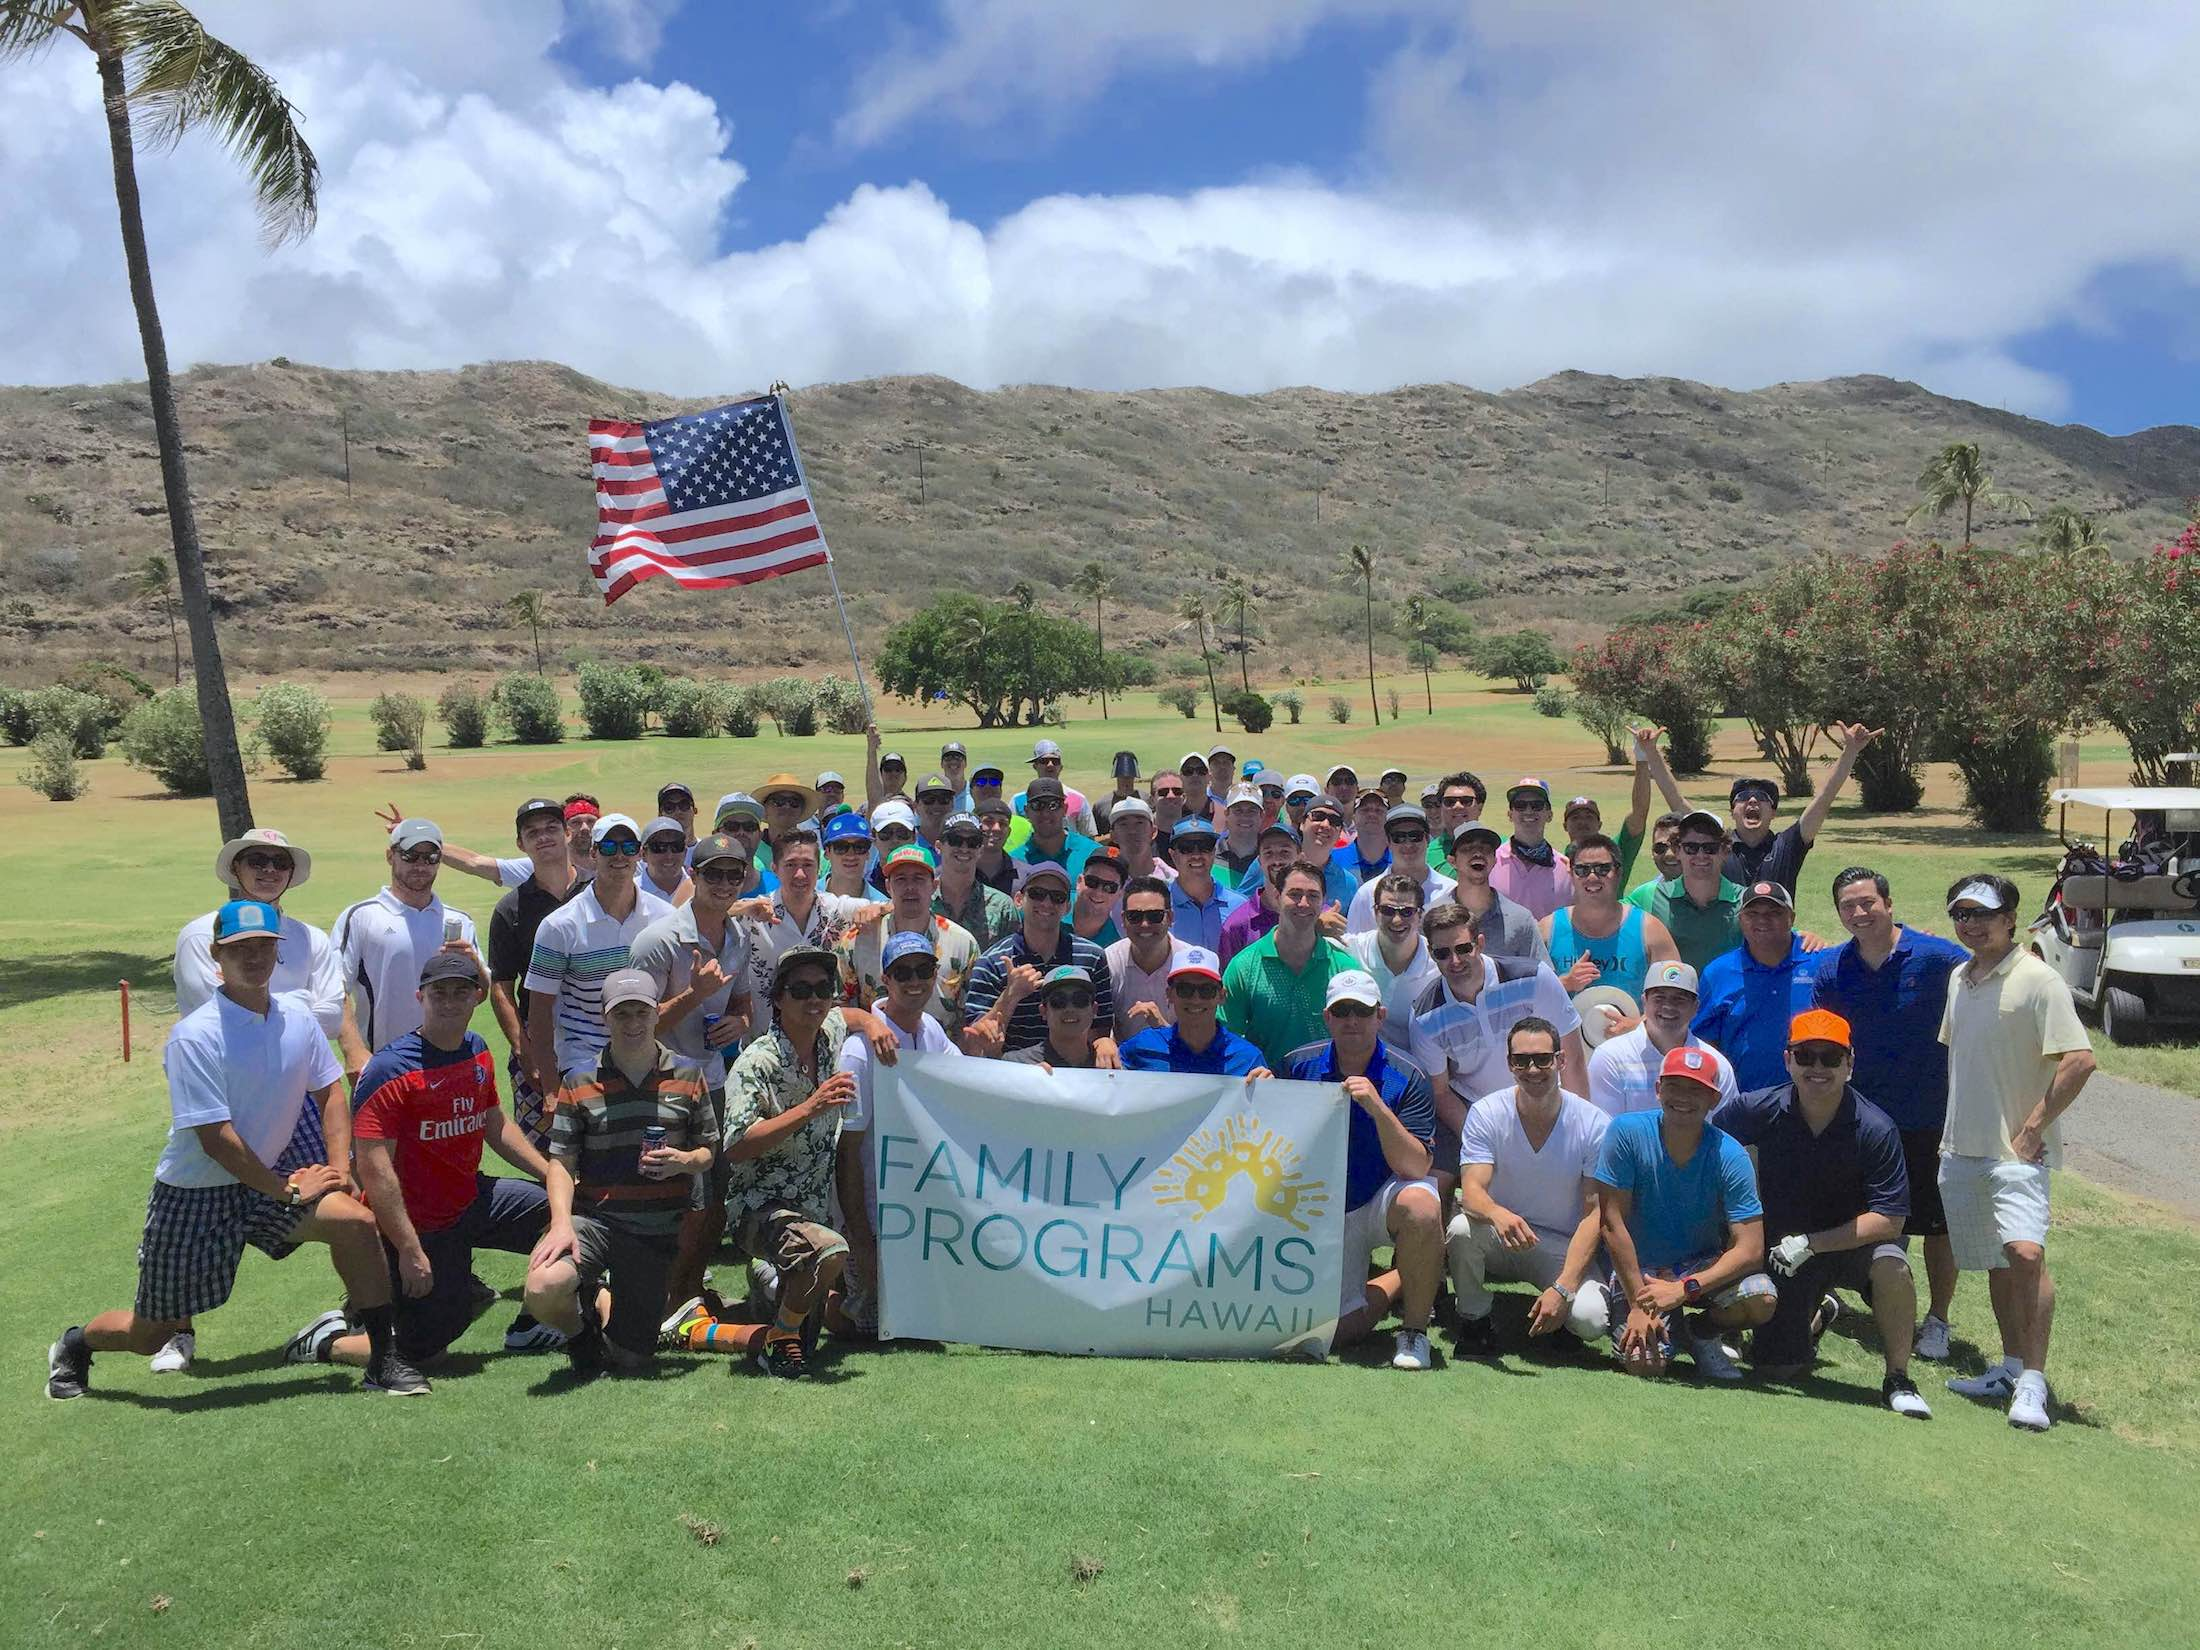 Invitational Golf Tournament – Players Support Family Programs Hawaii